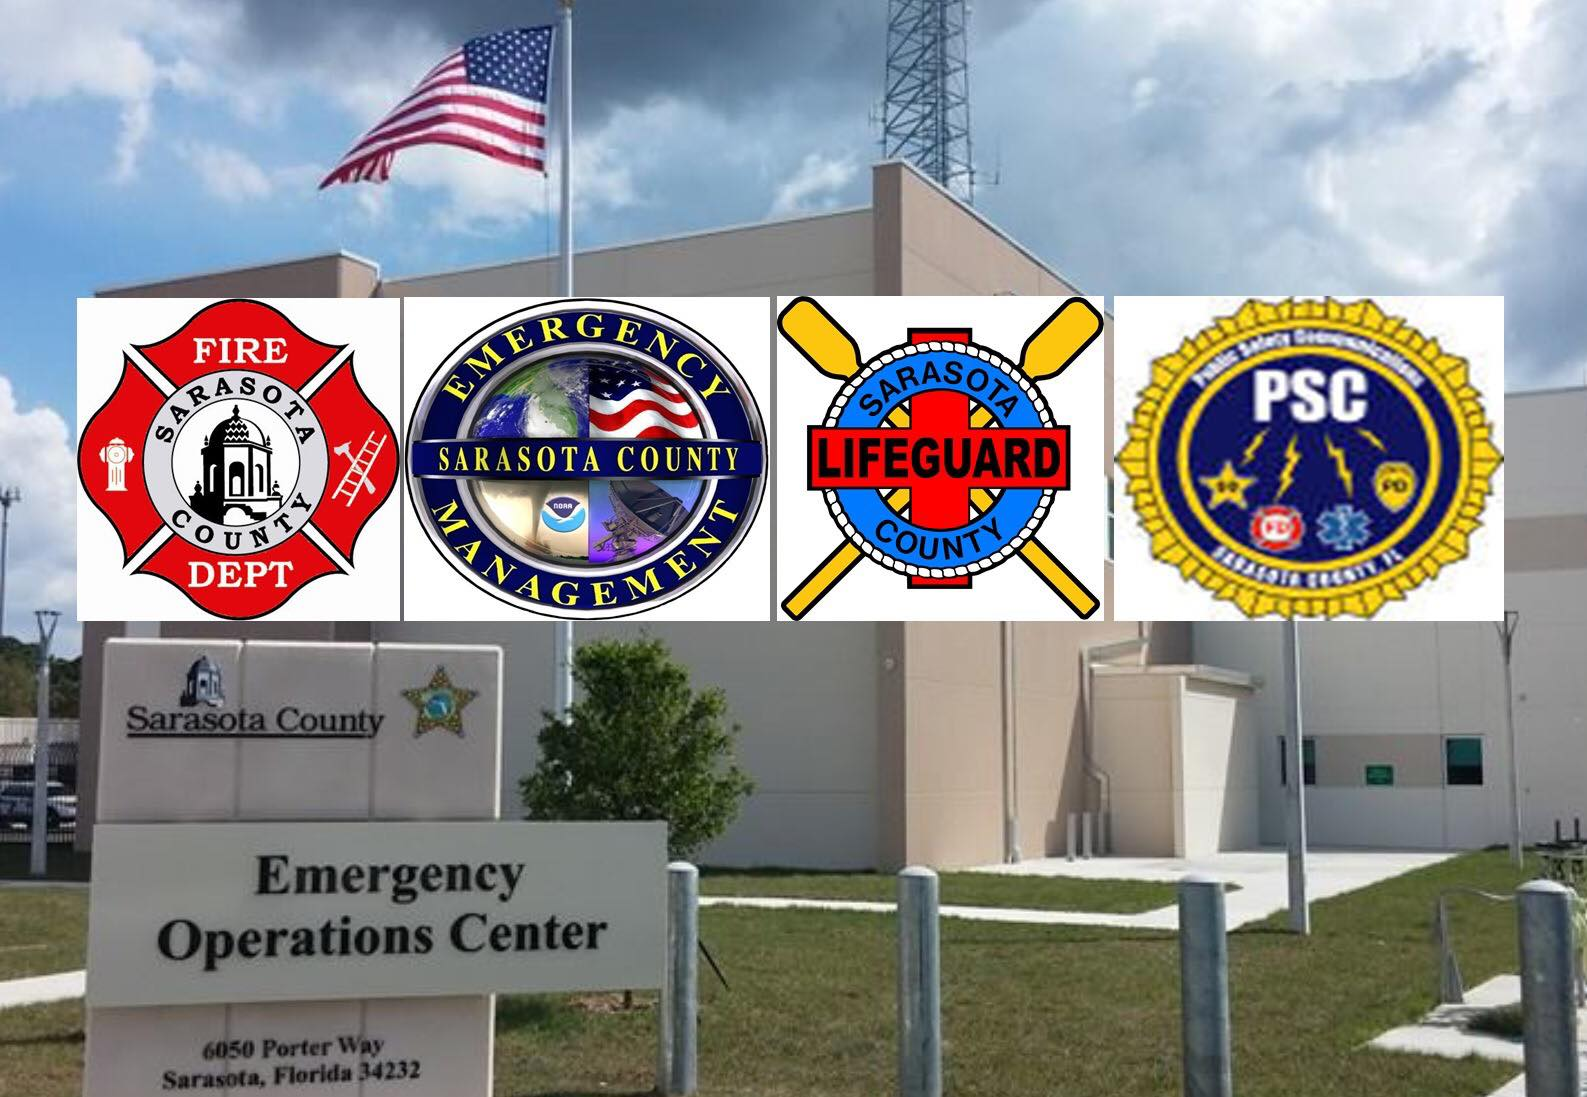 Emergency Operations Center for Sarasota County. Front view of the building with Emergency Services logos.